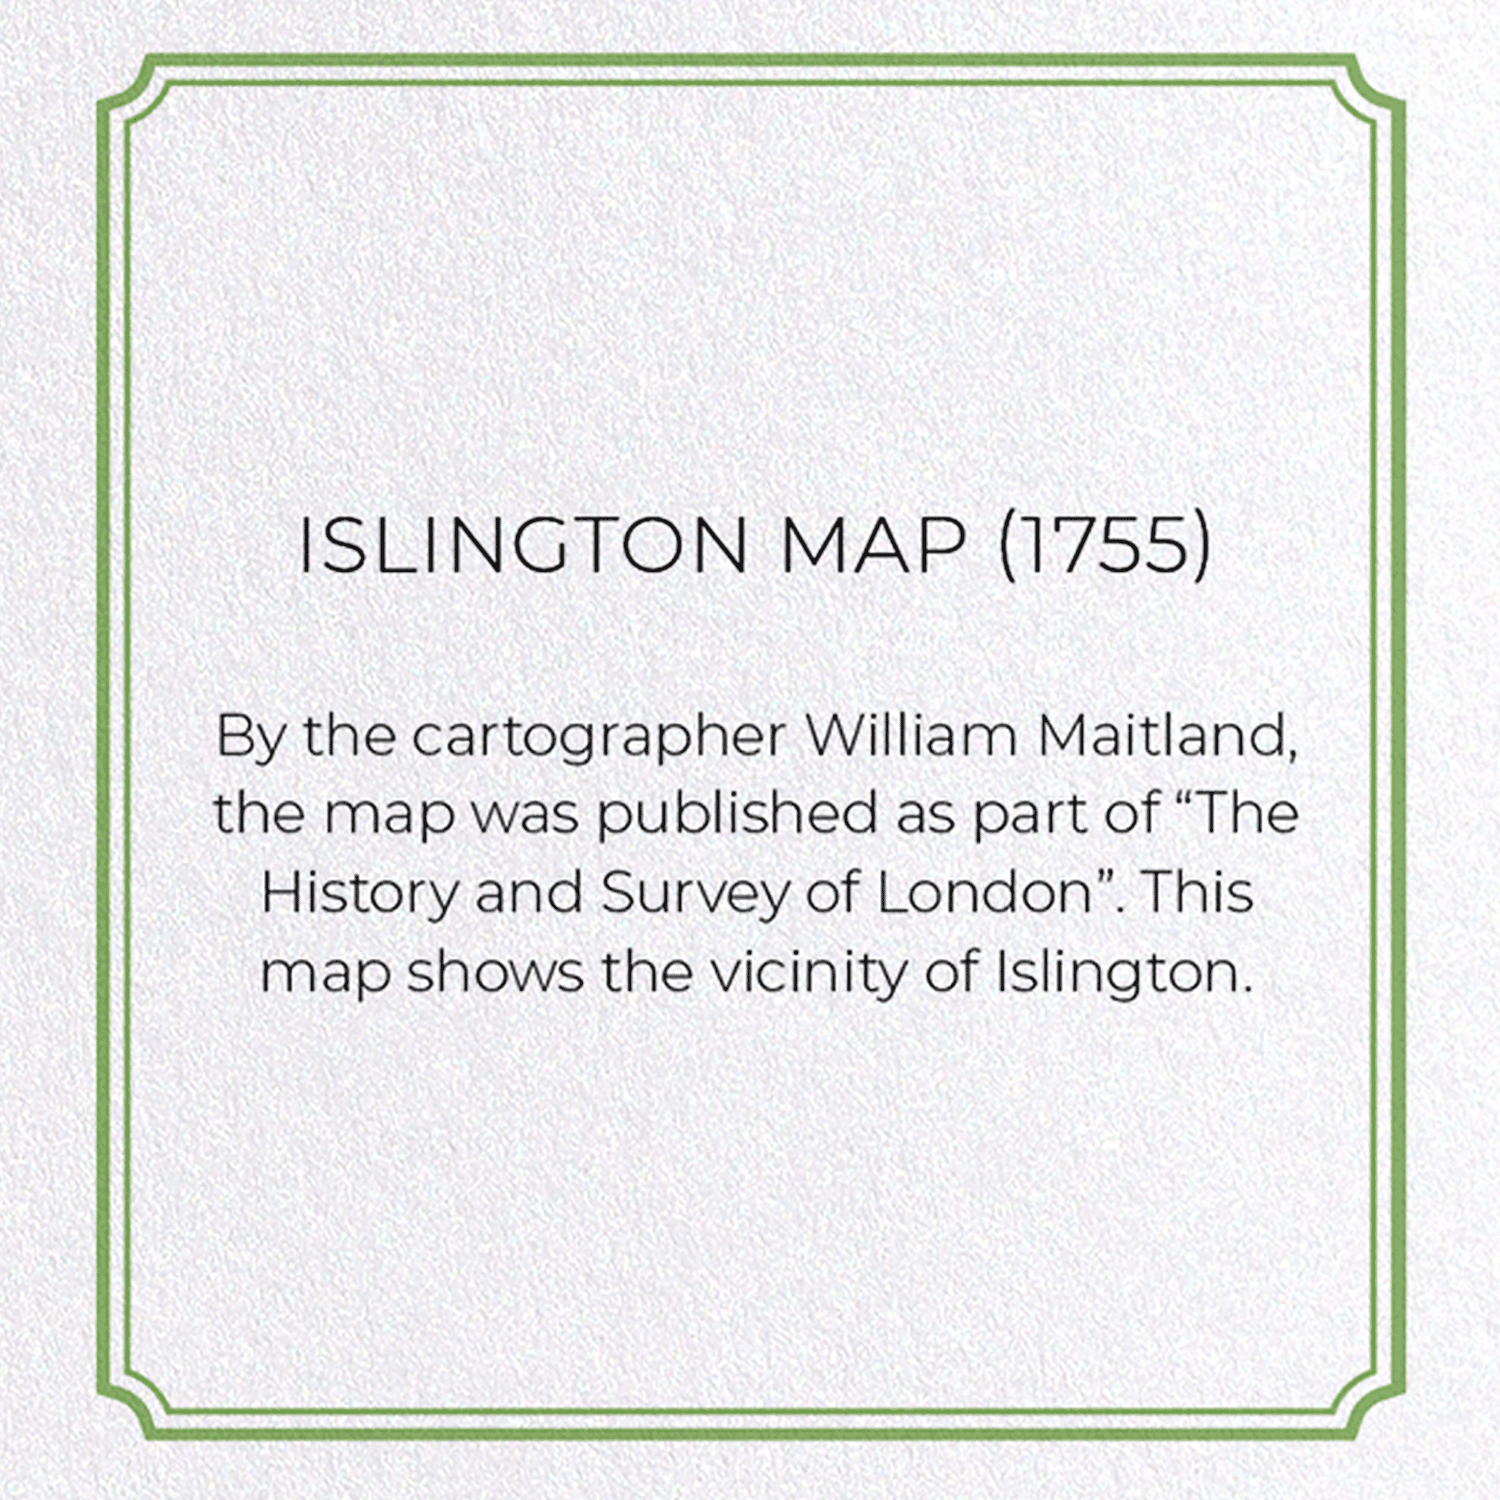 ISLINGTON MAP (1755): 8xCards